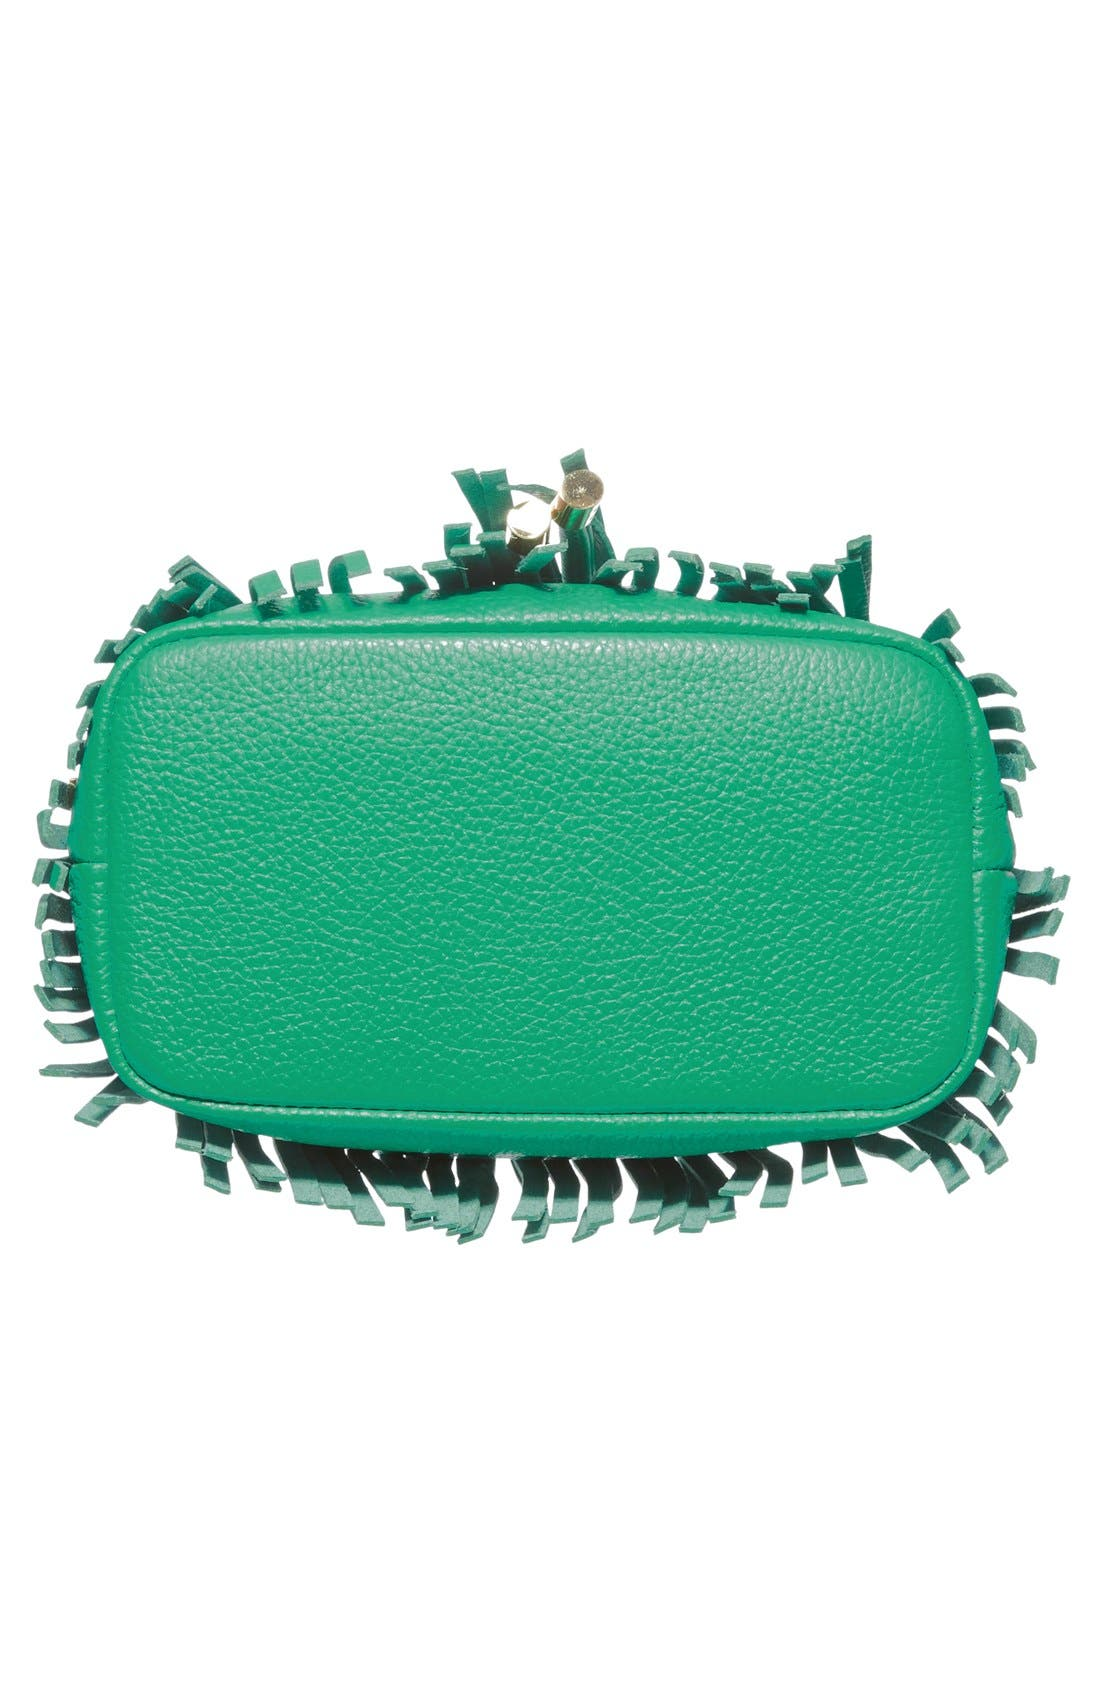 Fringed Leather Bucket Bag,                             Alternate thumbnail 6, color,                             Jade